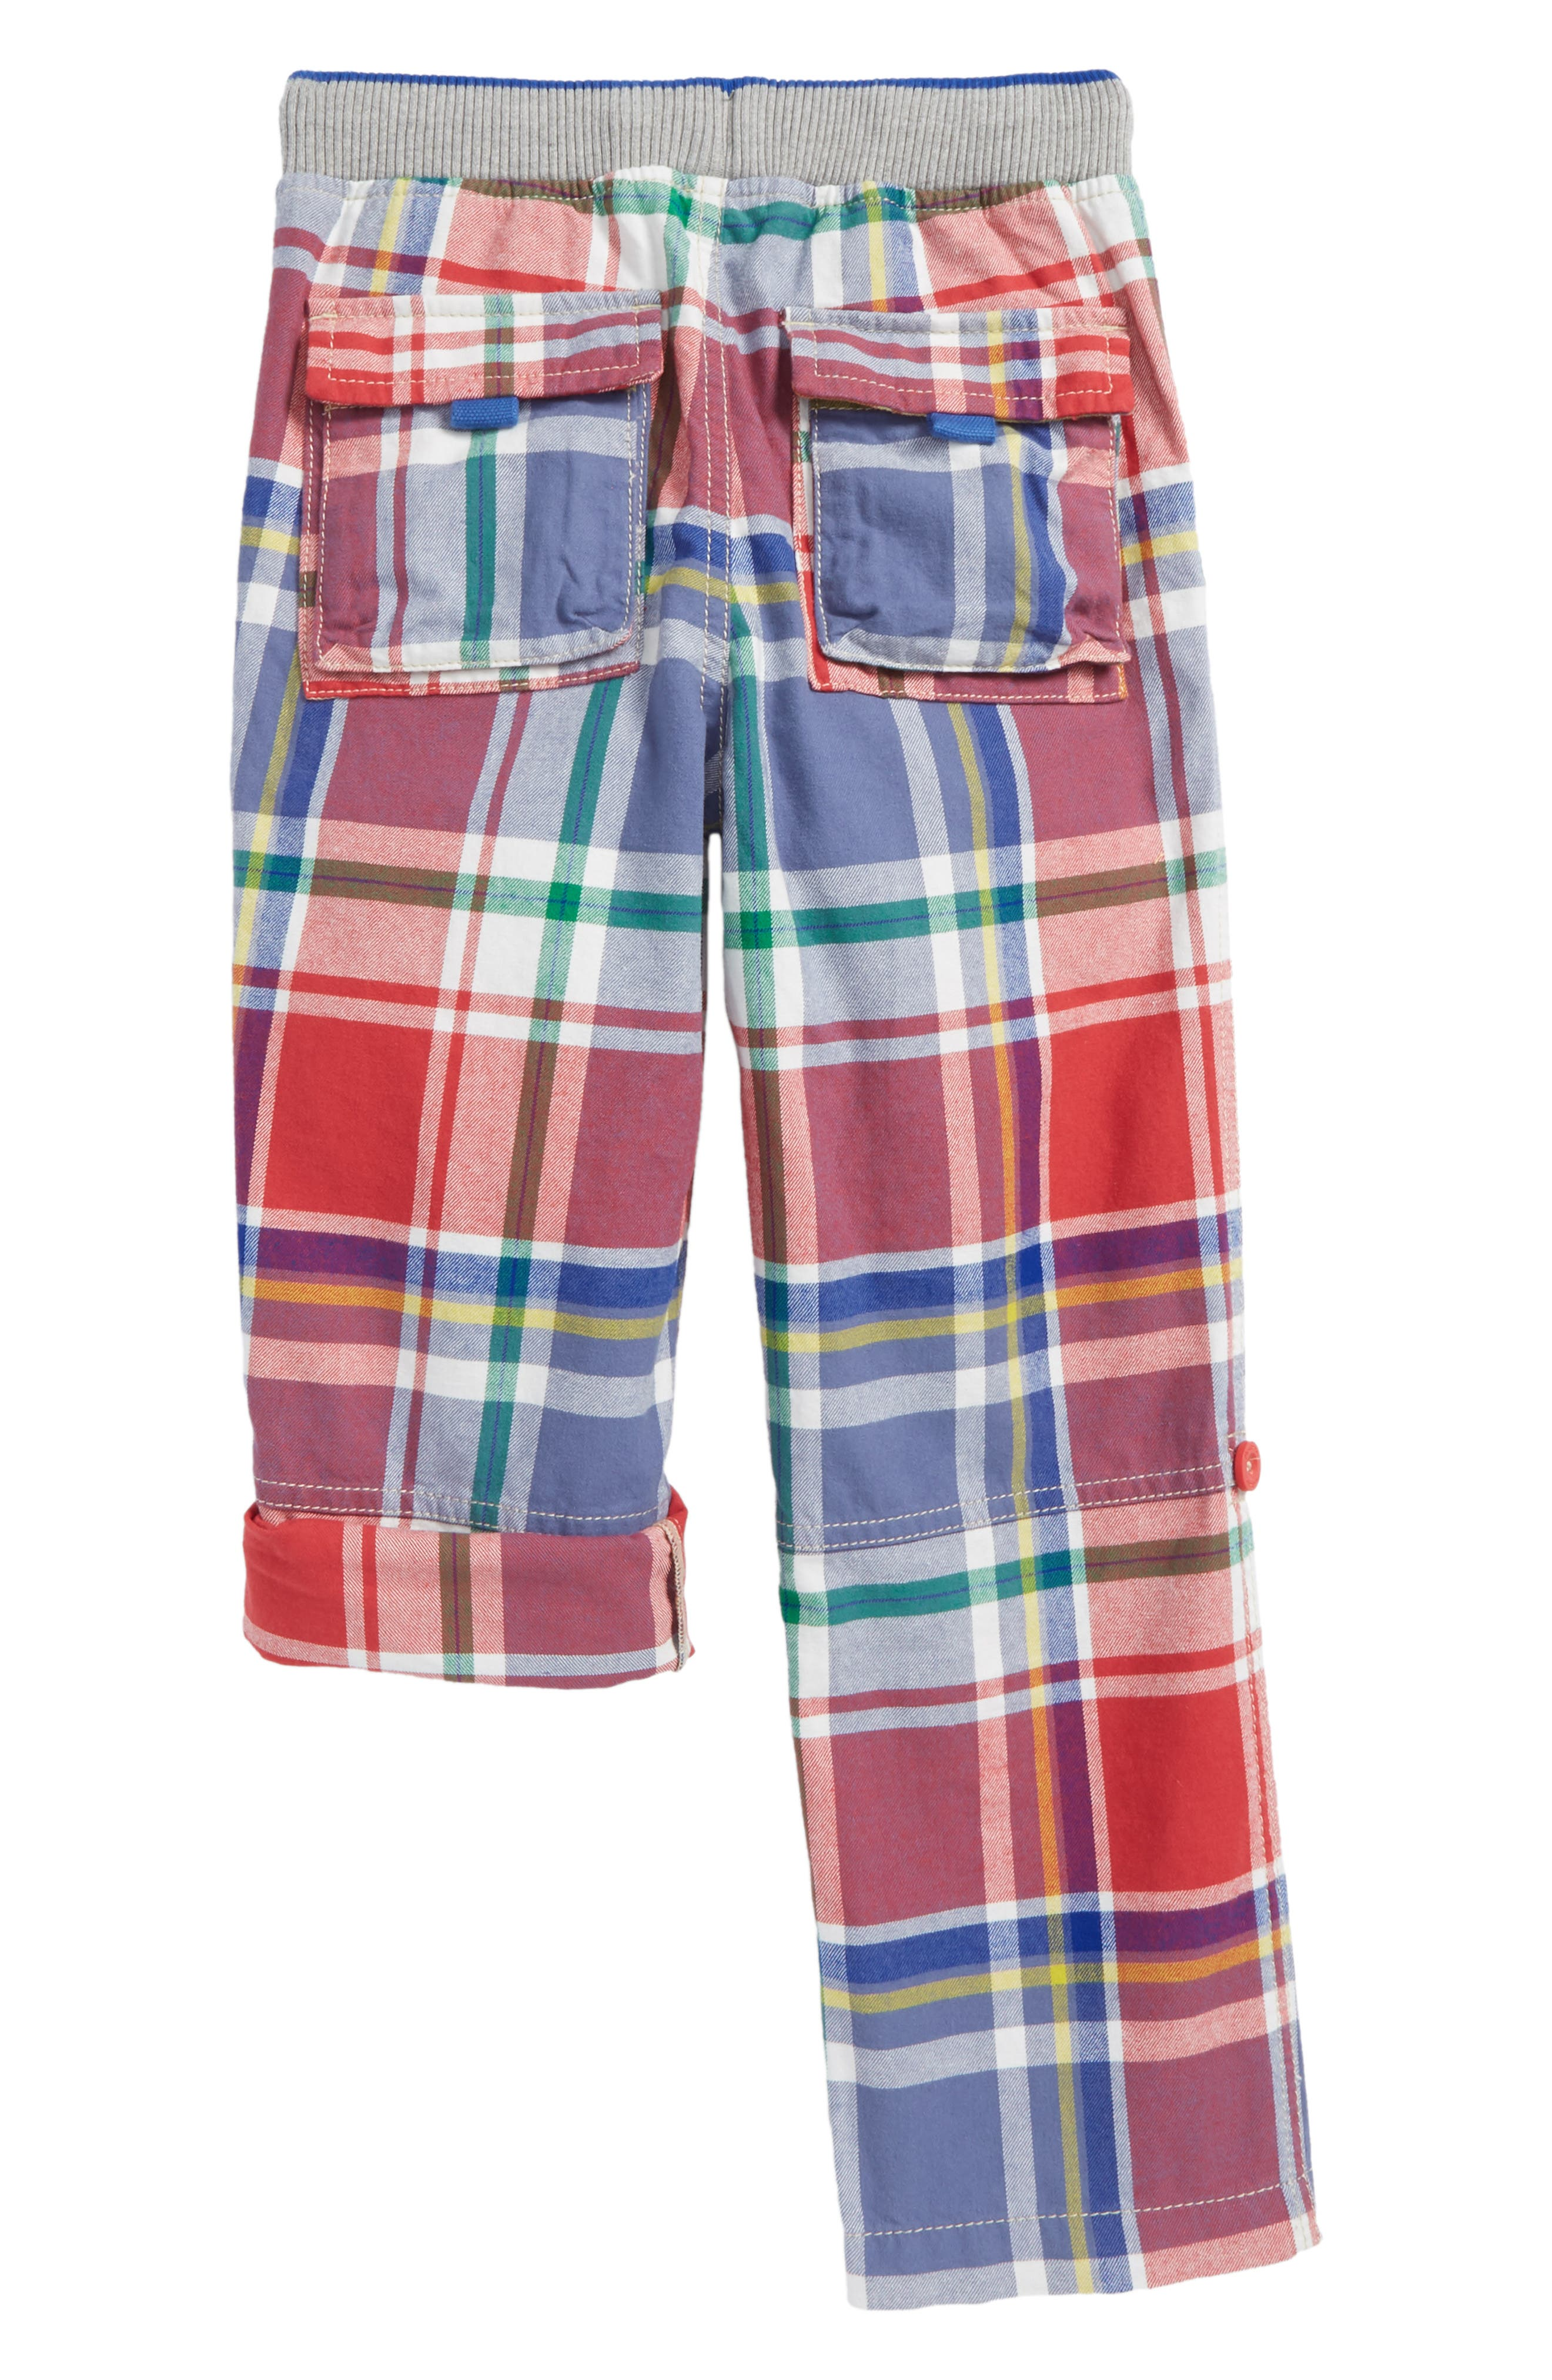 Plaid Roll-Up Pants,                             Alternate thumbnail 3, color,                             Washed Crimson Red/ Blue